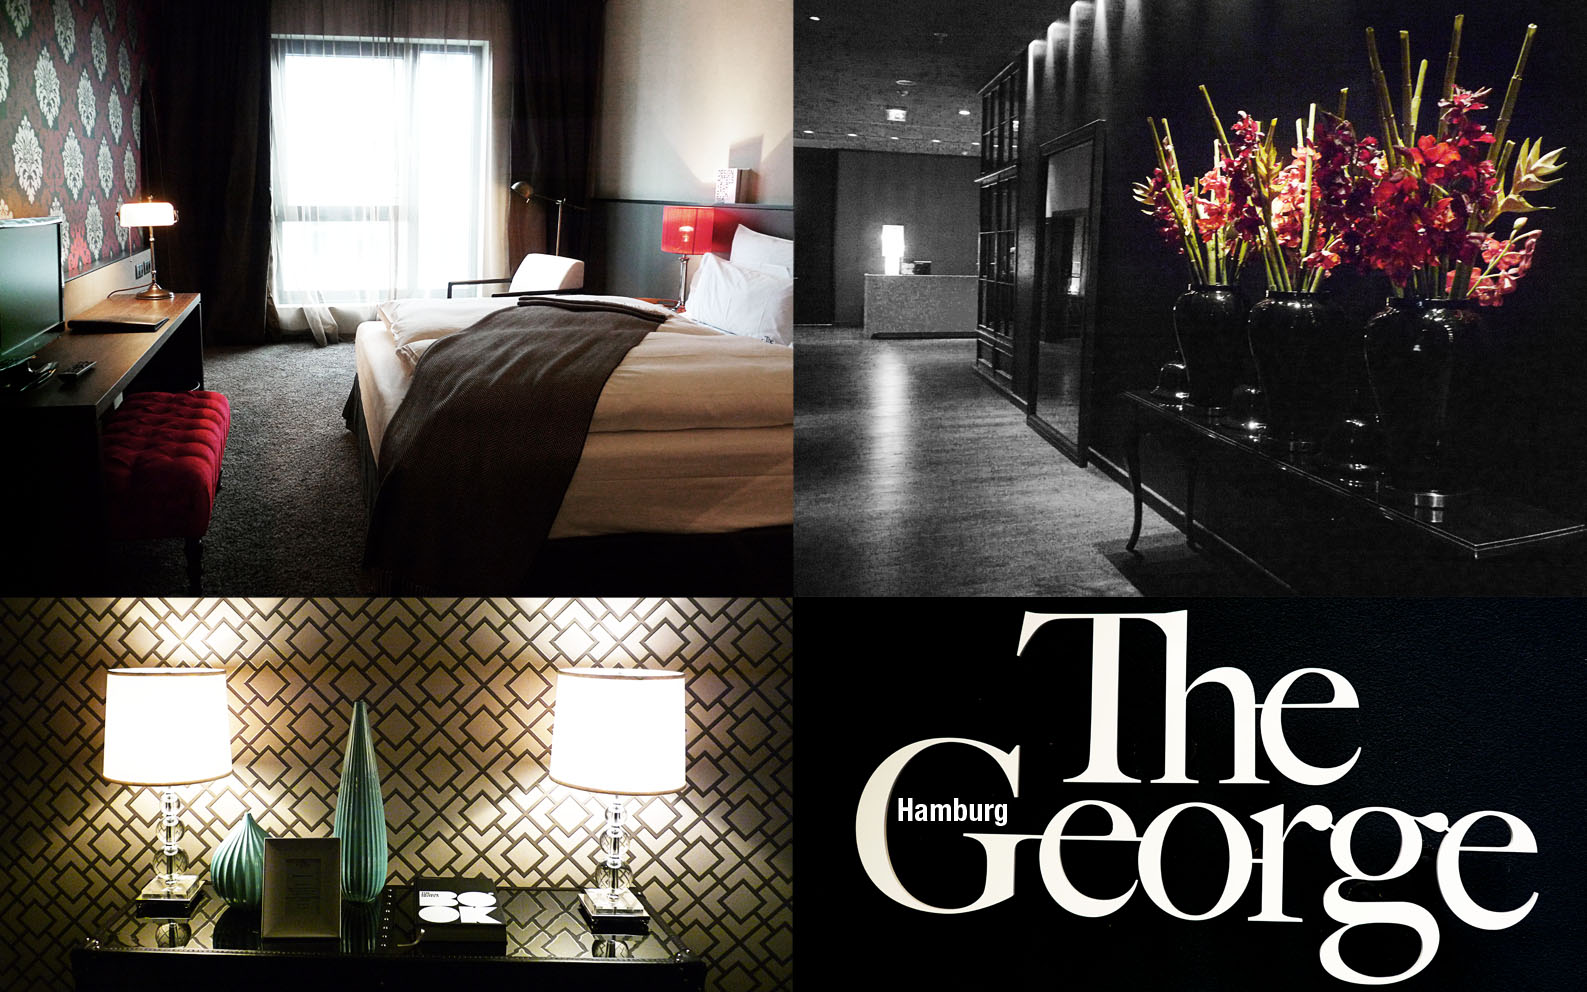 Hotel The George (Hambourg)1.jpg